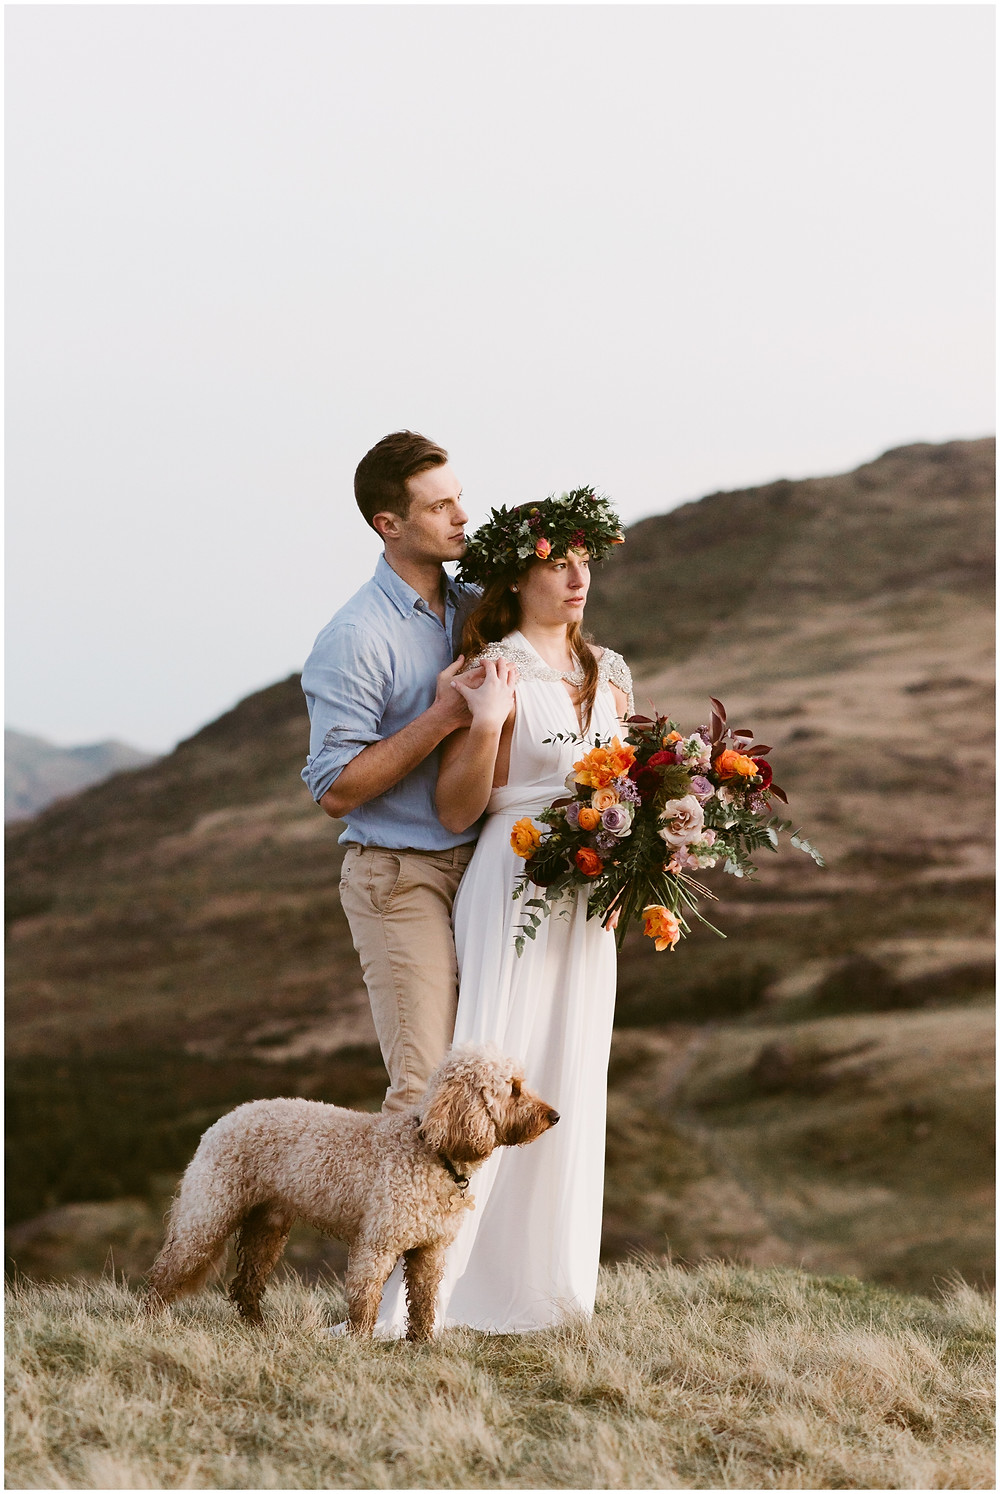 Outside wedding at Hardknott Pass in the Lake District, United Kingdom